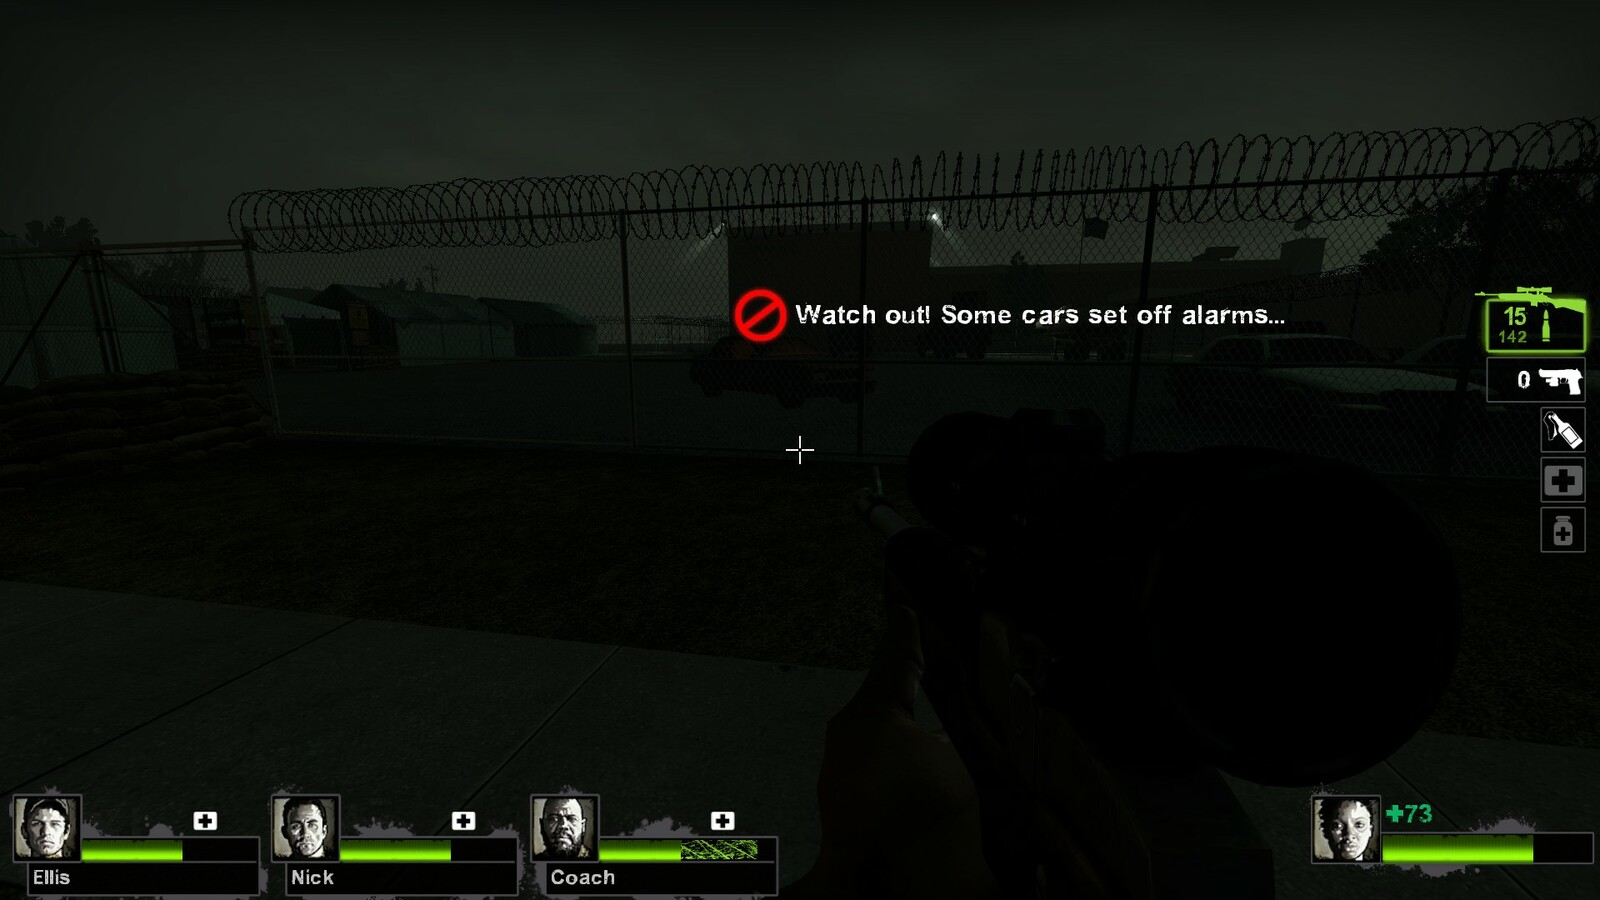 A horde event will only trigger here if players manage to shoot the cars on the other side of the fence.